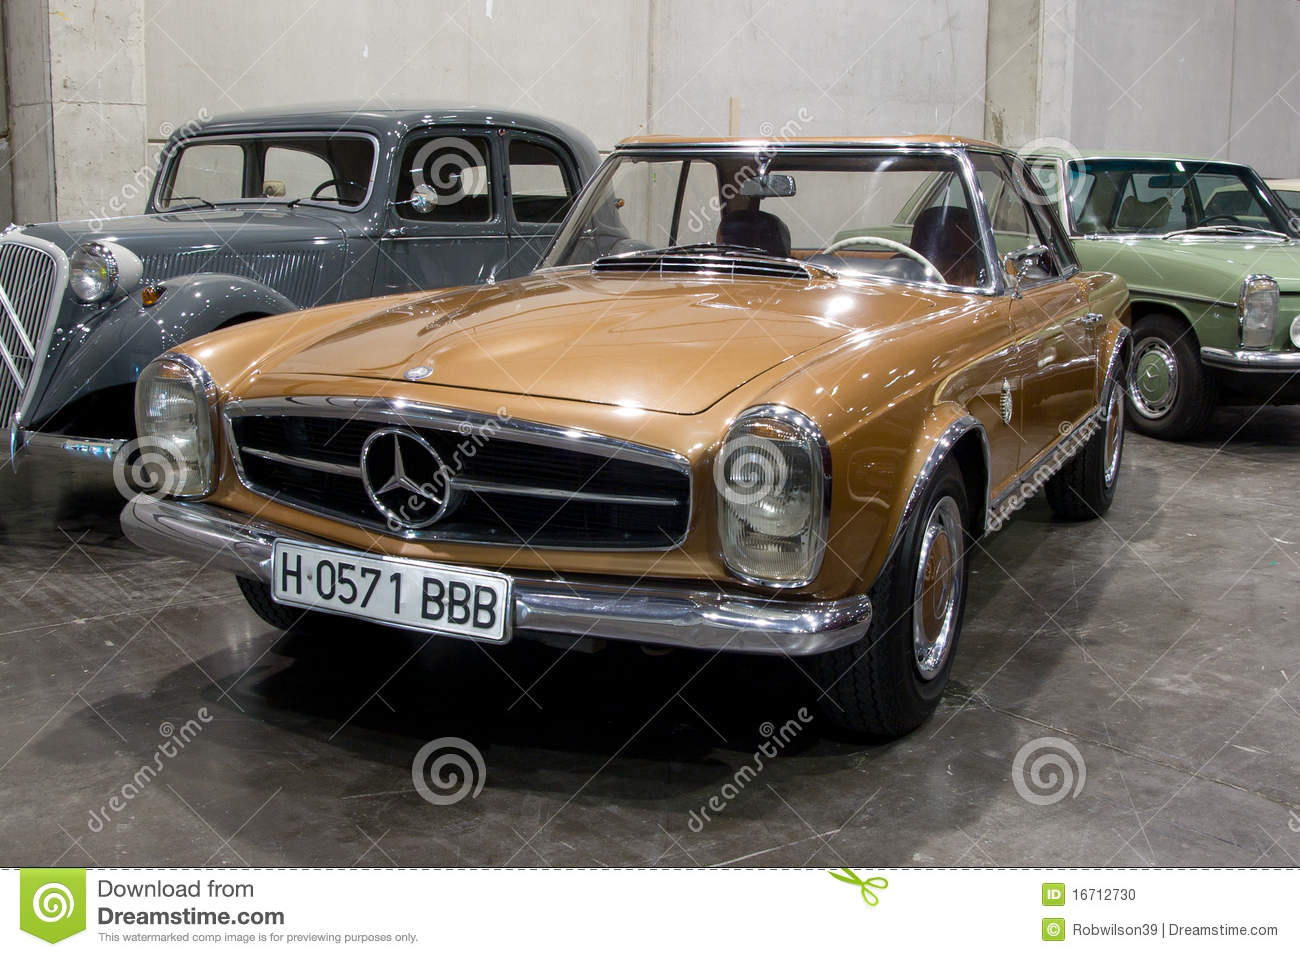 VALENCIA, SPAIN   OCTOBER 22: A 1967 Mercedes Benz 250 SL Pagoda  (California Version) Is On Display At The 2010 Motor Epoca Classic Car Show  On October 22, ...